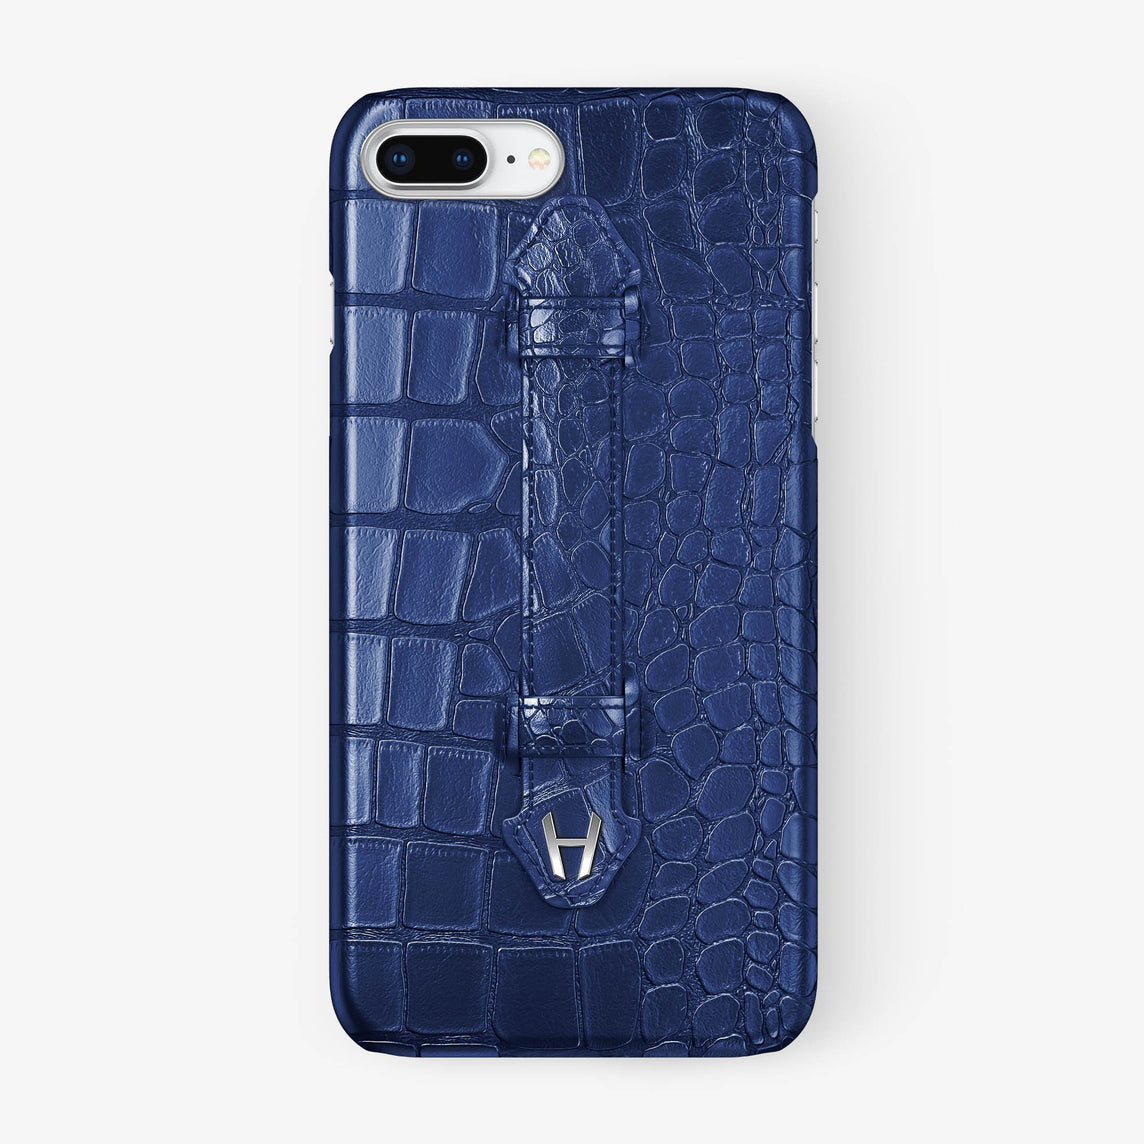 Navy Blue Alligator iPhone Finger Case for iPhone 7/8 Plus finishing stainless steel - Hadoro Luxury Cases